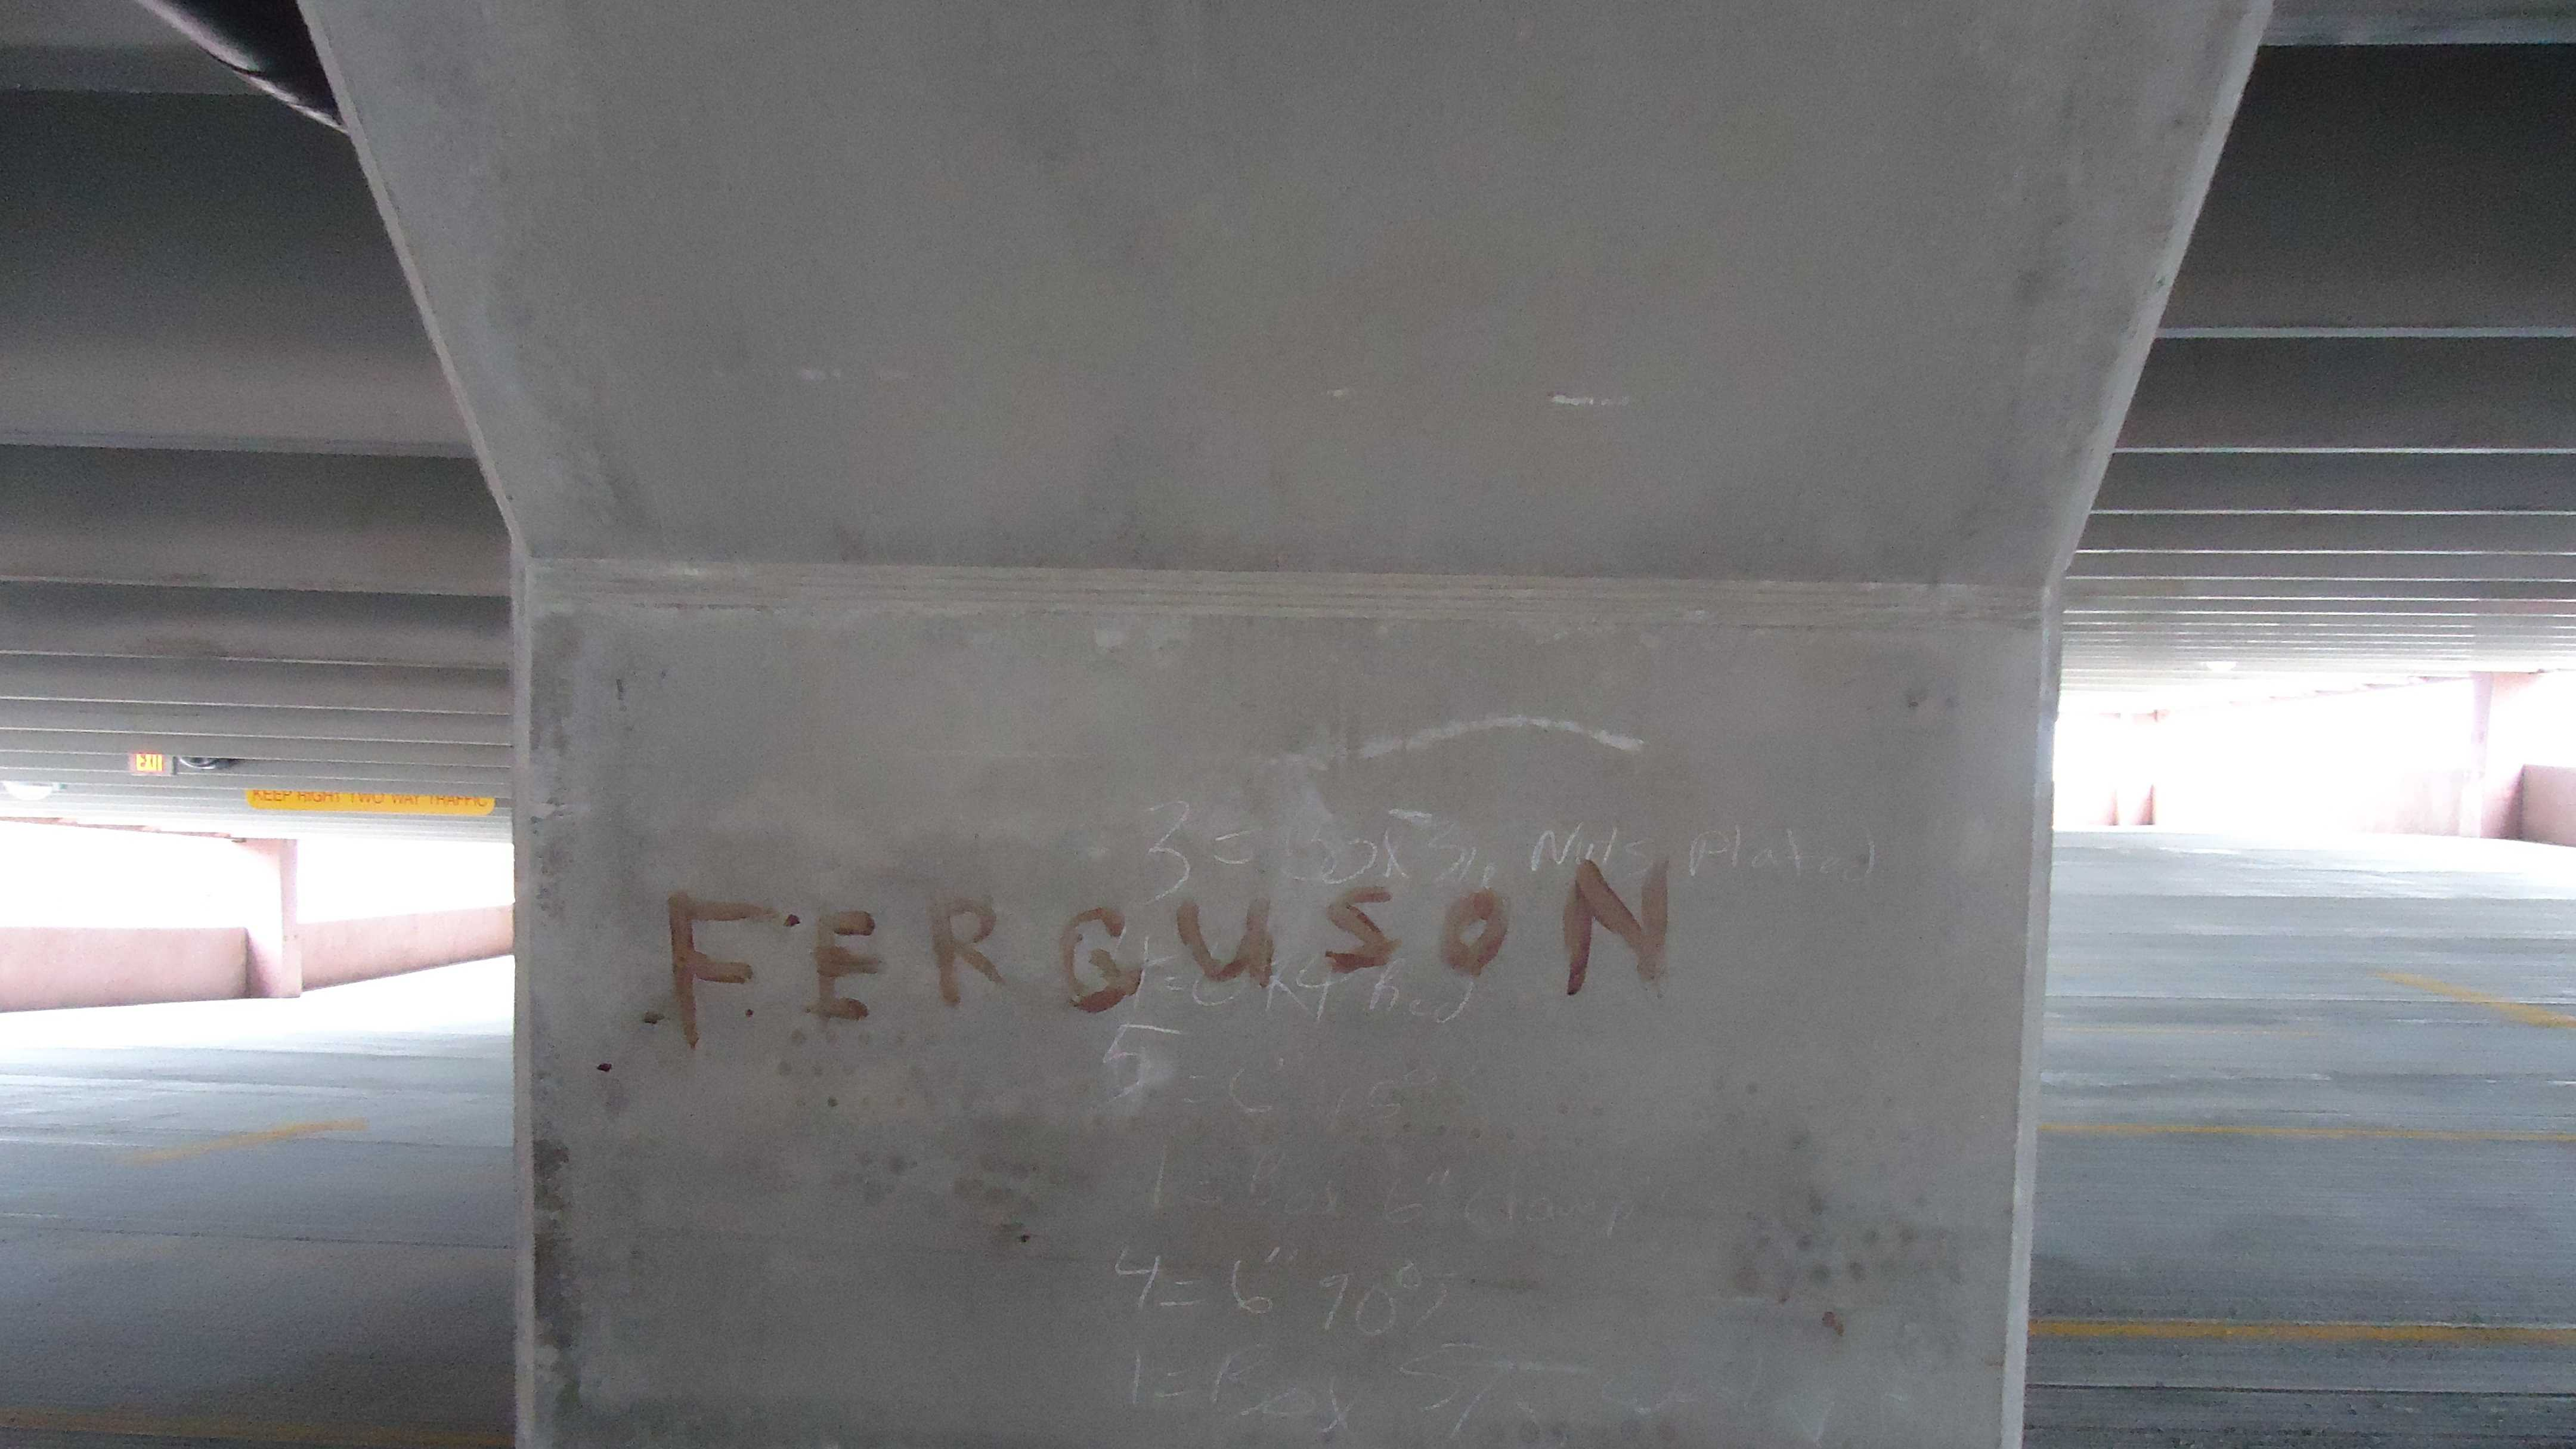 St. Albans police are looking for information related to an incident of vandalism that occurred at the city garage on Lake Street. Police say the word Ferguson was written in a red substance across one of the pillars.